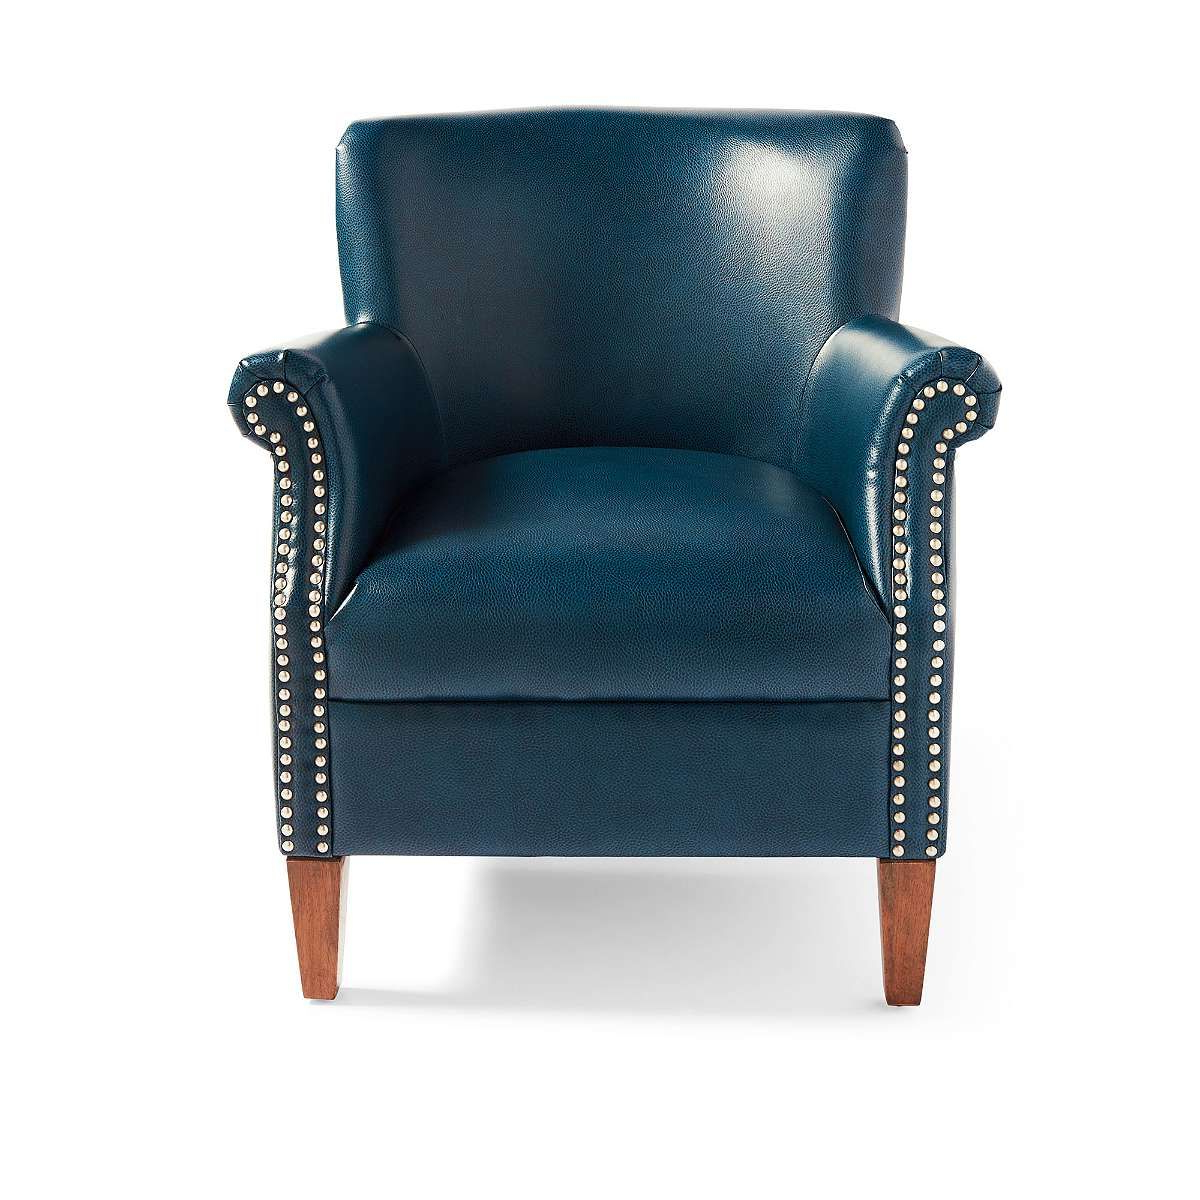 Pinterest Regarding Current Grandin Leather Sofa Chairs (Gallery 5 of 20)